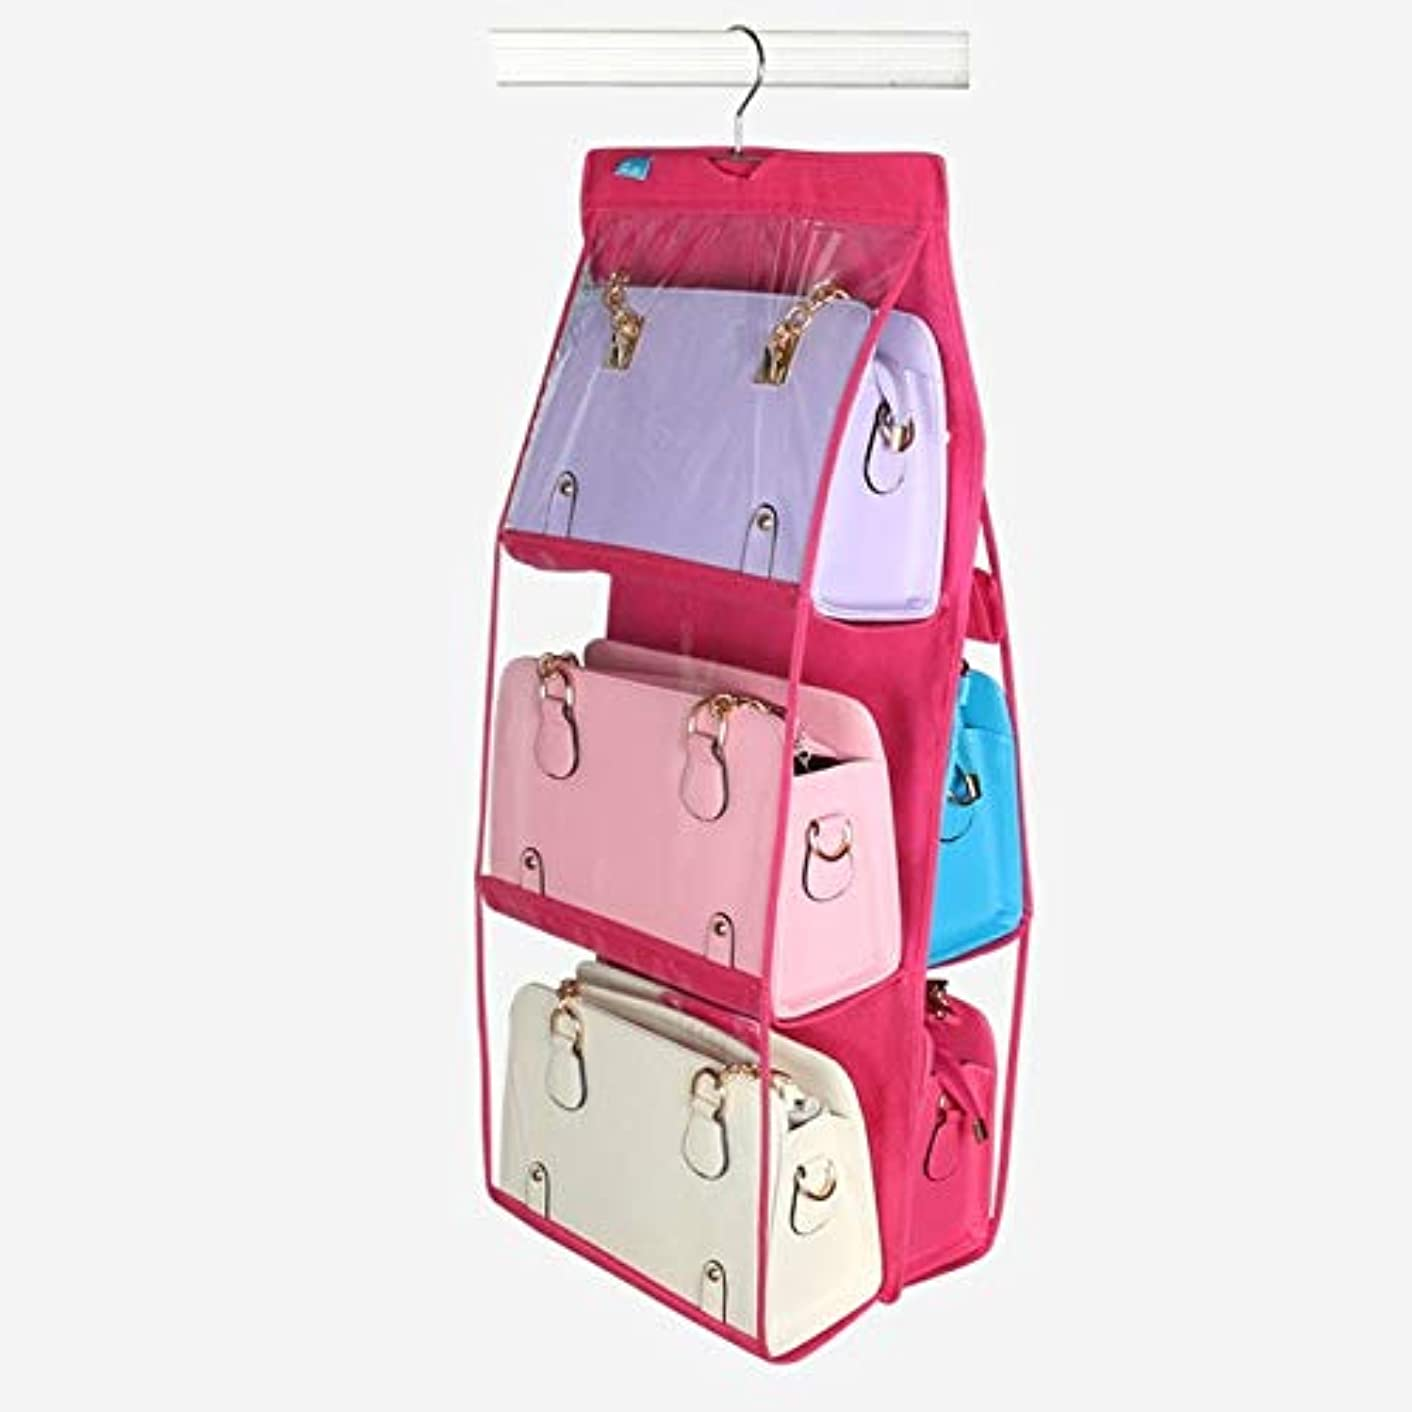 Family Organizer Backpack handbag Storage Bags Be Storage Bag Hanging Pocket Supplies Closet Hangers Home Shoe 6 High Rack